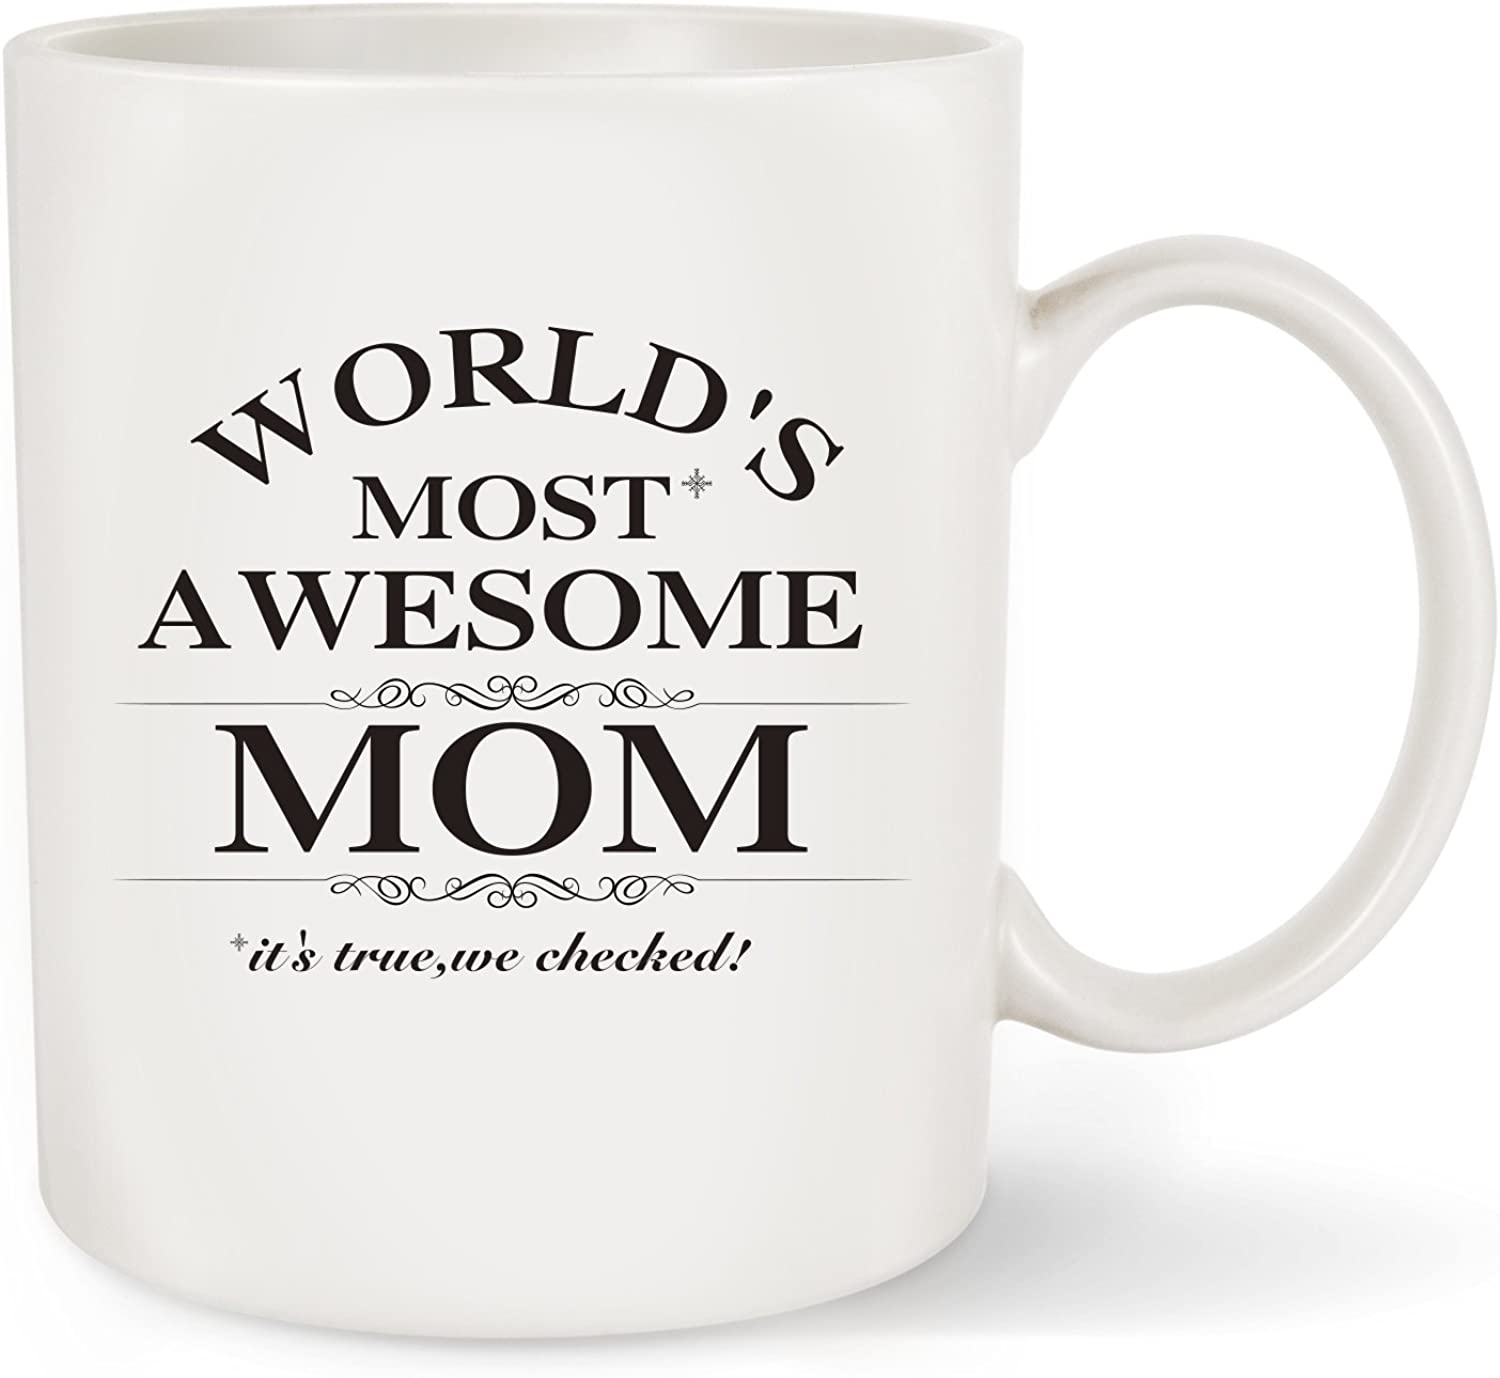 Mother's Day Gift Best Mom Coffee Mug  World's Most Awesome Mom  Unique Birthday Presents or Christmas Gifts Idea for Women Her New Mom Mummy Wife Coffee Mug Tea Cup